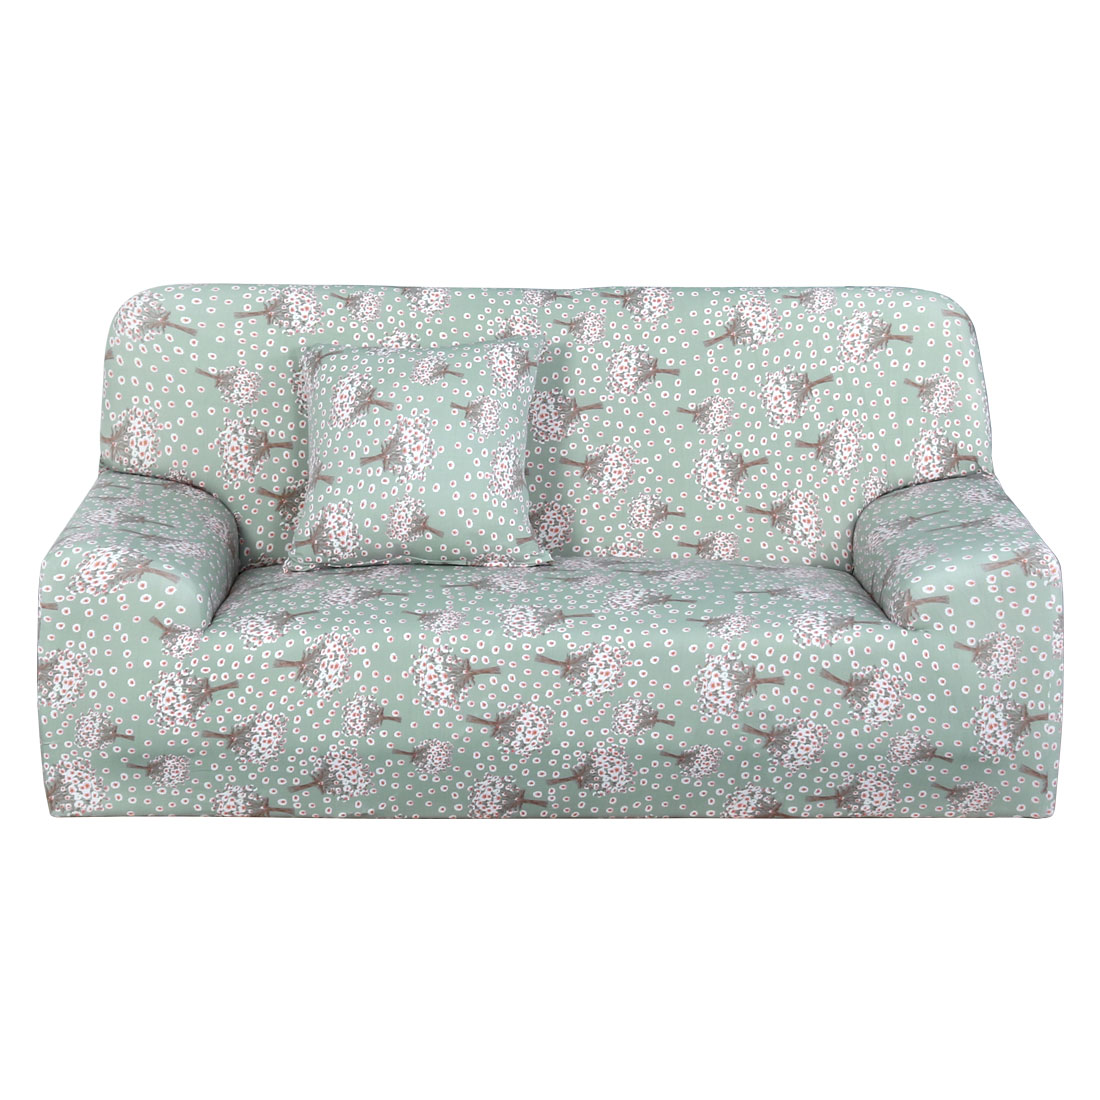 Household Polyester Hyacinth Pattern Elastic Sofa Loveseat Cover Slipcover Protector 55-74 Inch